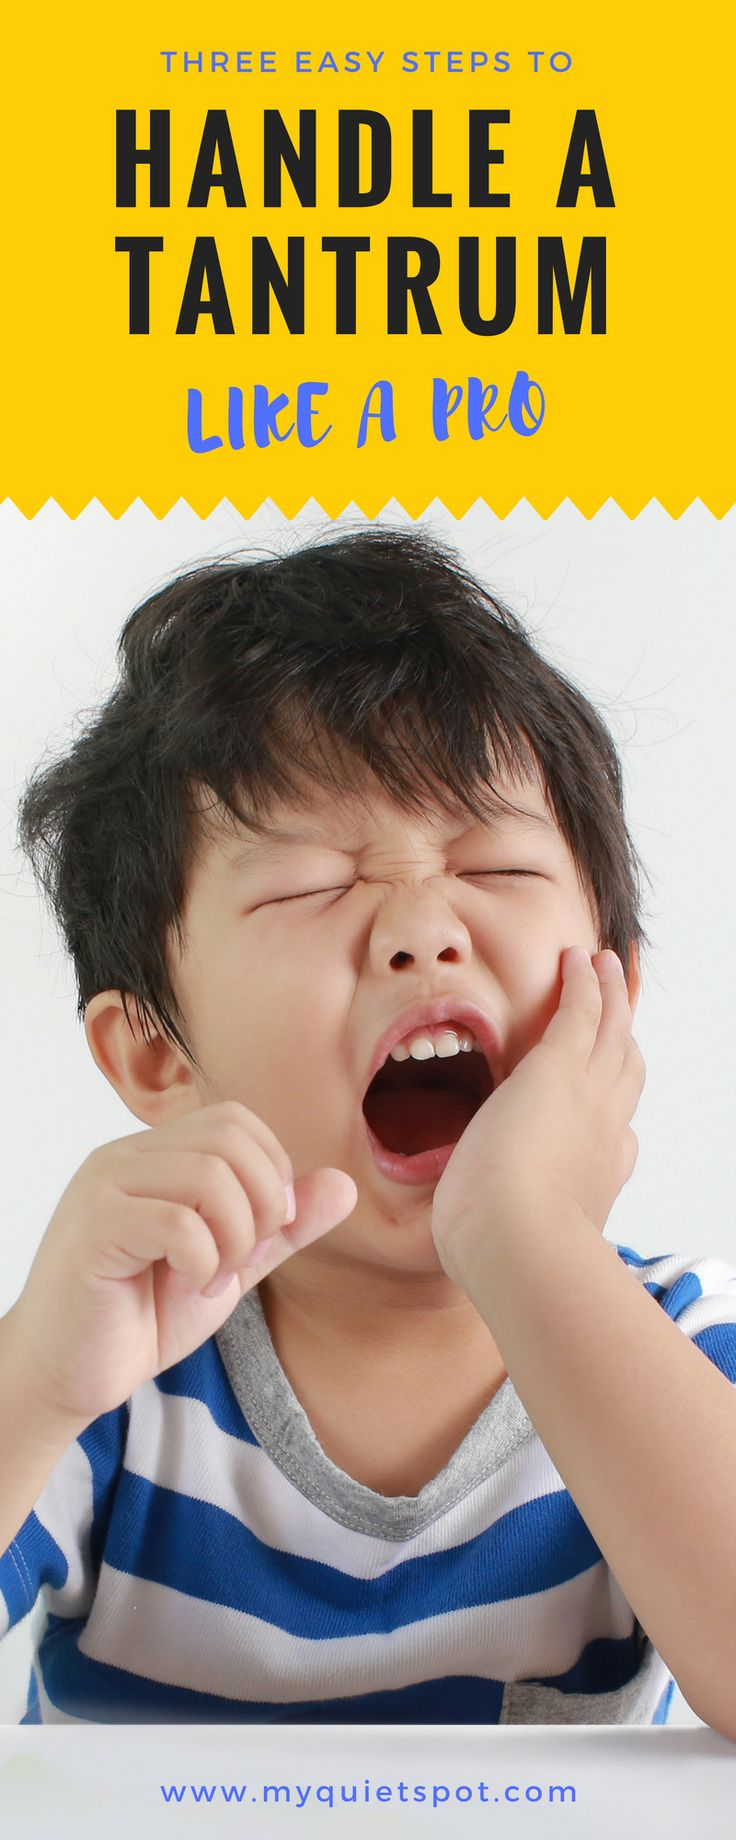 Being a parent can be challenging in the face of tantrums. Handle a tantrum like a pro with these 3 simple steps. Read this article and find parenting tips and advice for remaining calm and gentle even with your kid crying, screaming or kicking. | tantrum | gentle parenting |